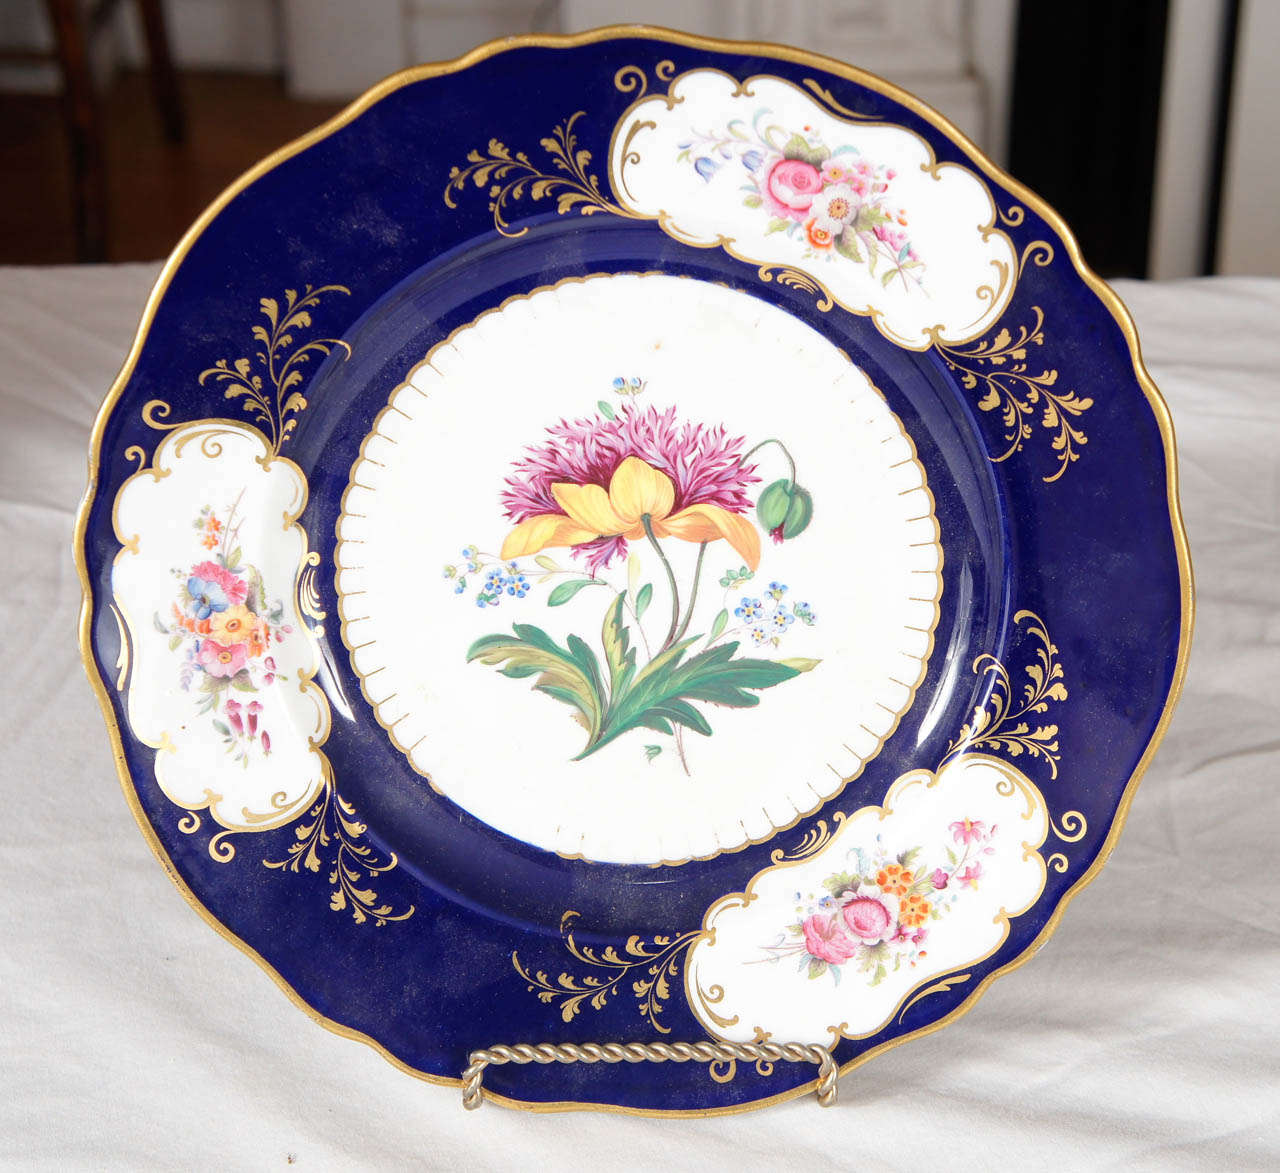 Pair of Similar Ridgway Porcelain Service Plates For Sale 1